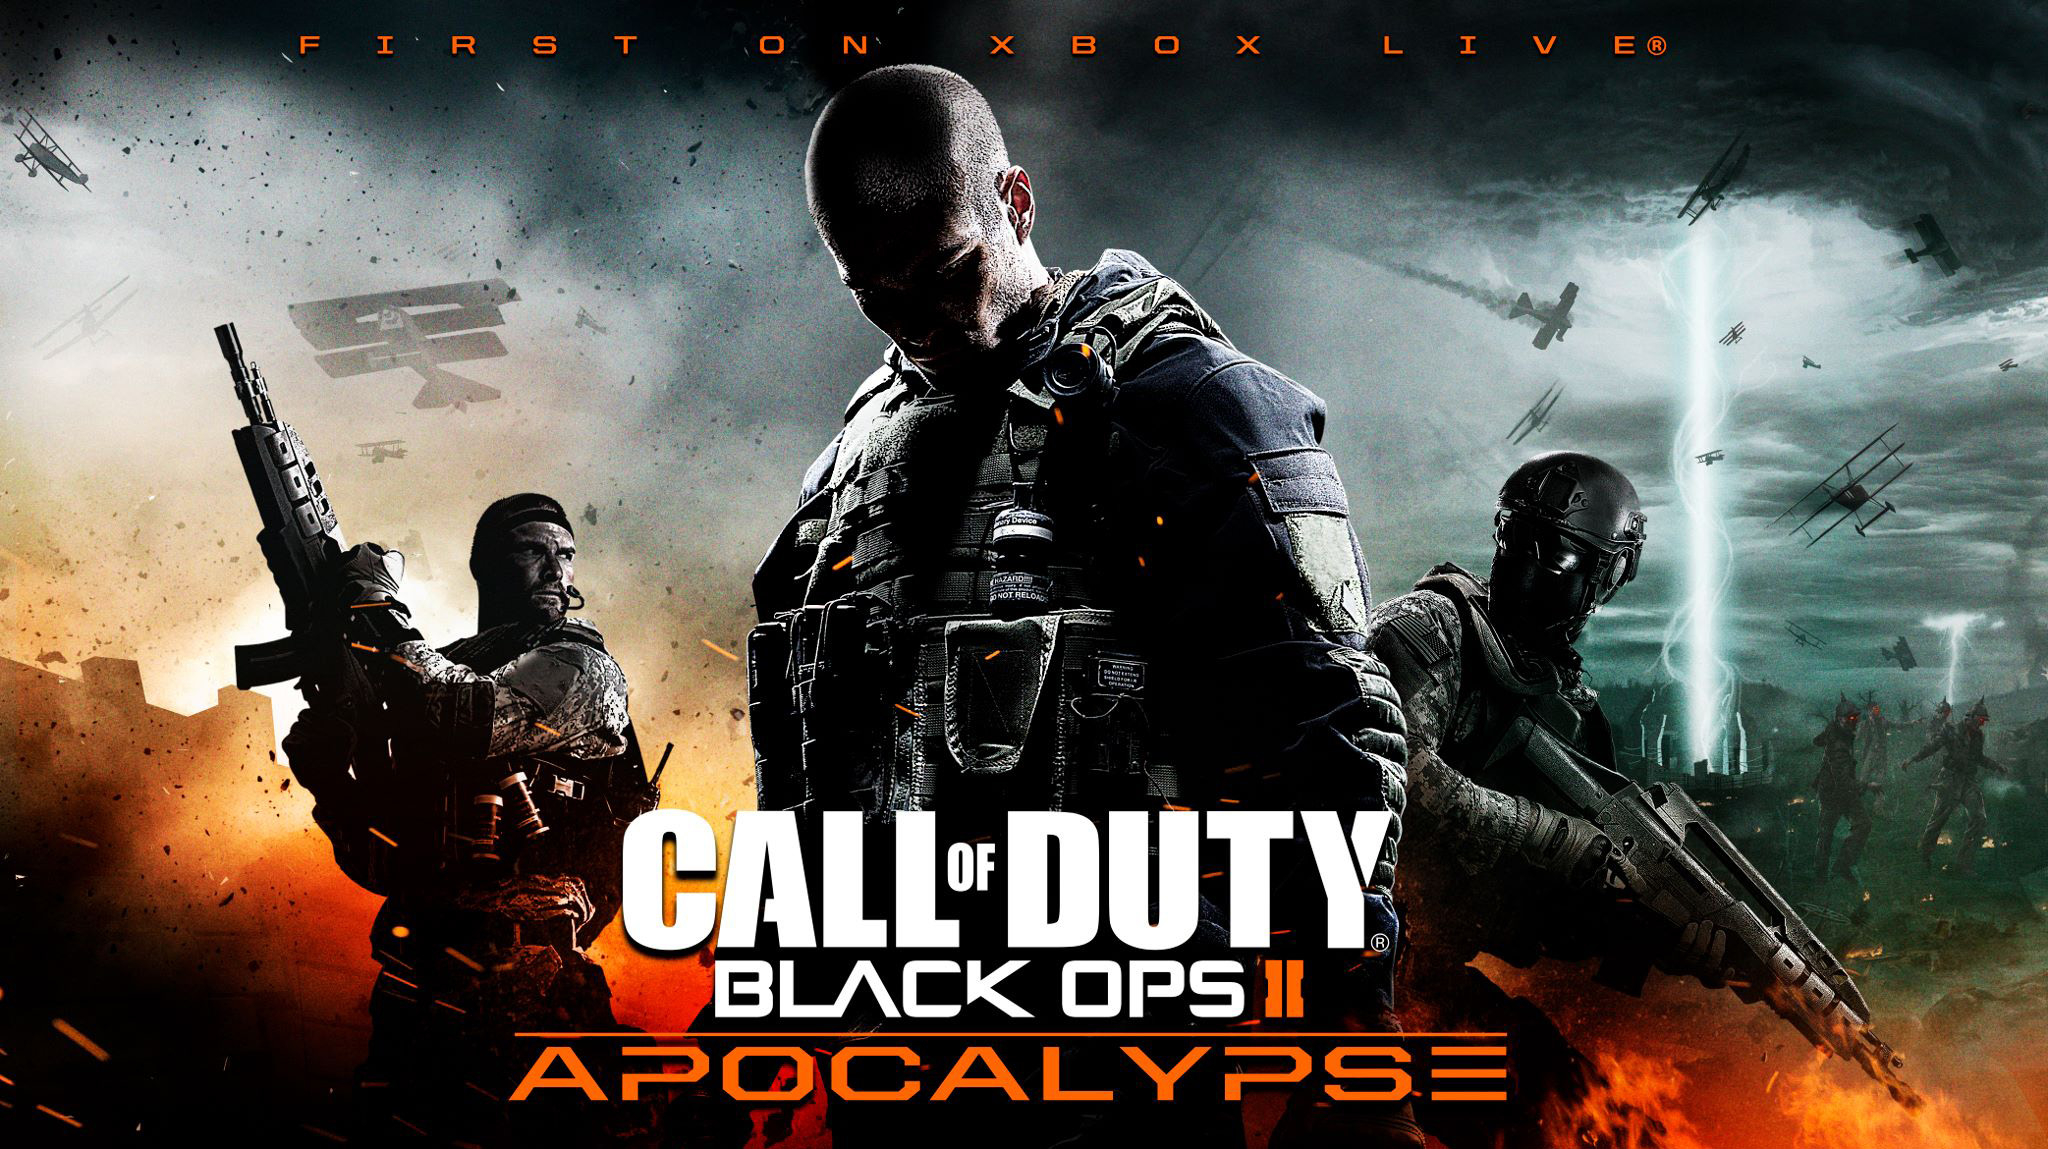 black ops 2 apocalypse map pack with 23579 Call Of Duty Black Ops 2 Dlc Wraps Up With Apocalypse Brings New Zombies C Aign Origins on 56070 further 1 furthermore File Medical Tent additionally Watch likewise 23579 Call Of Duty Black Ops 2 Dlc Wraps Up With Apocalypse Brings New Zombies C aign Origins.